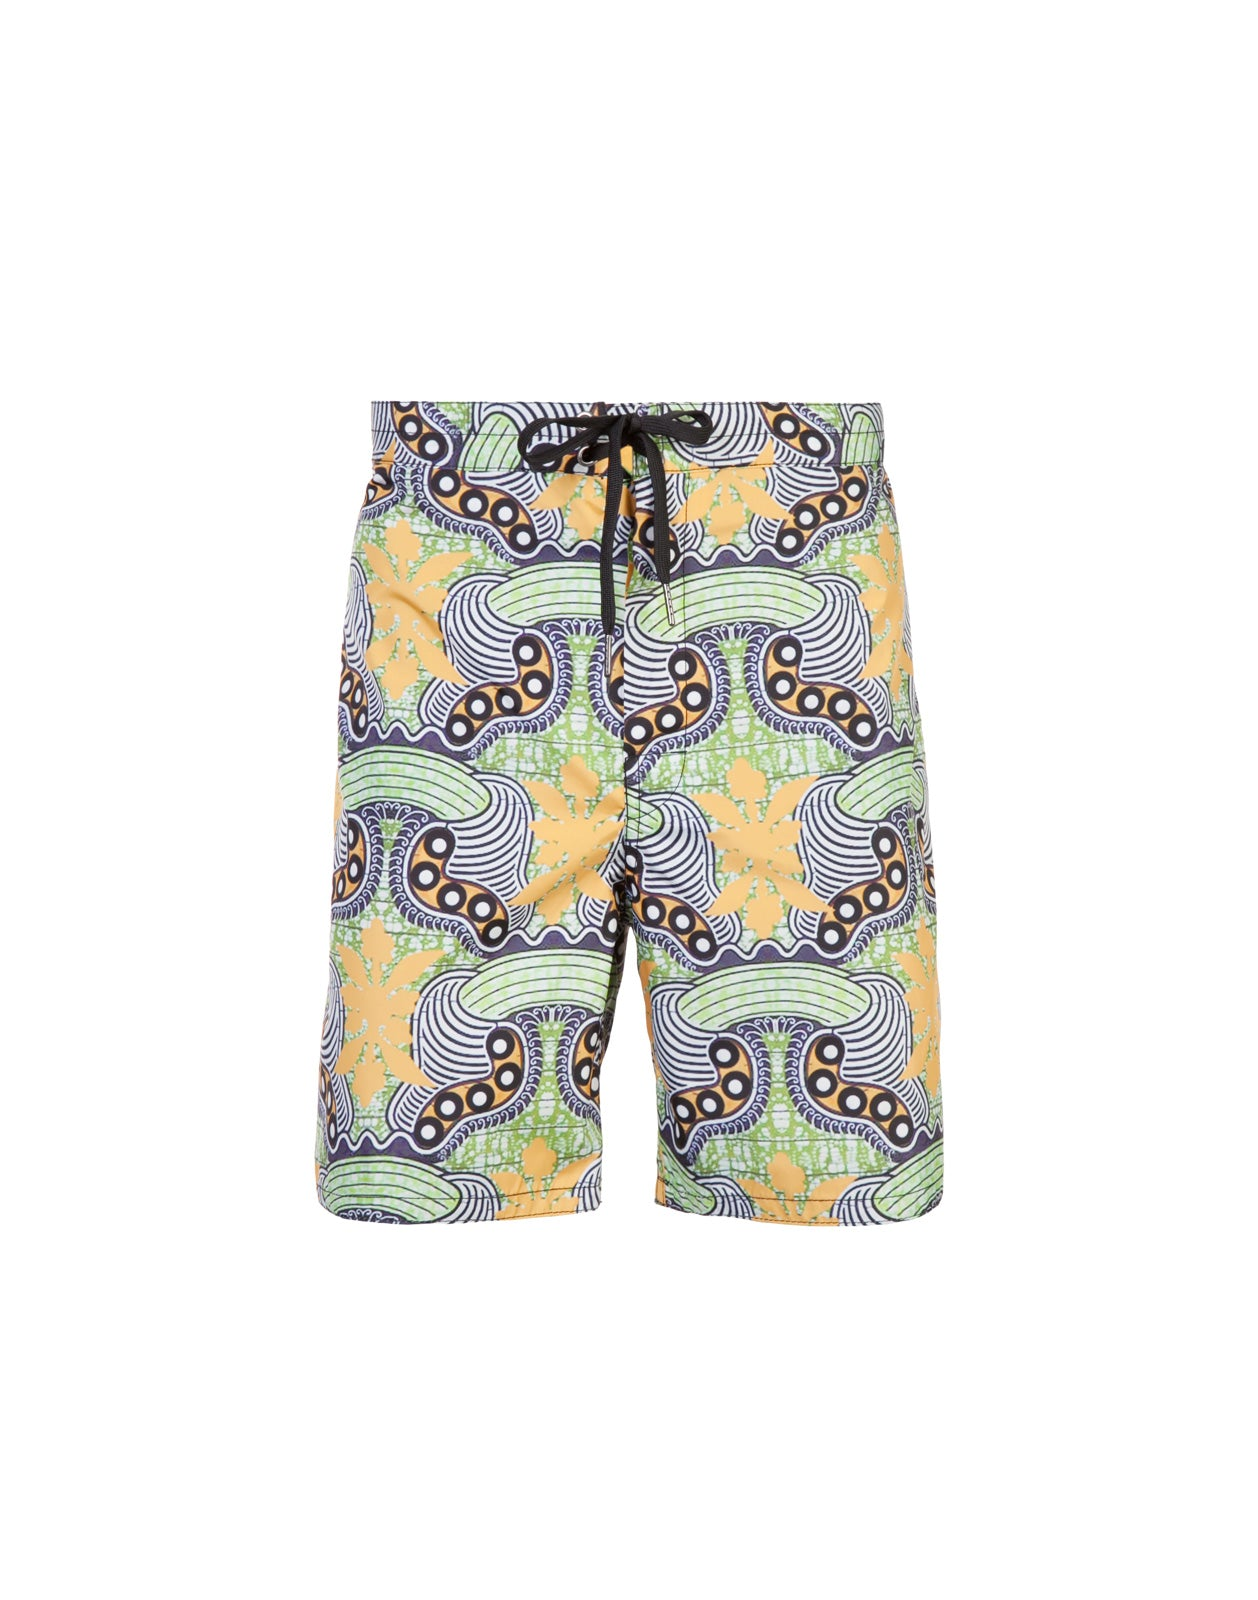 Greenroom board shorts in abstract graphic print with drawstring waist.